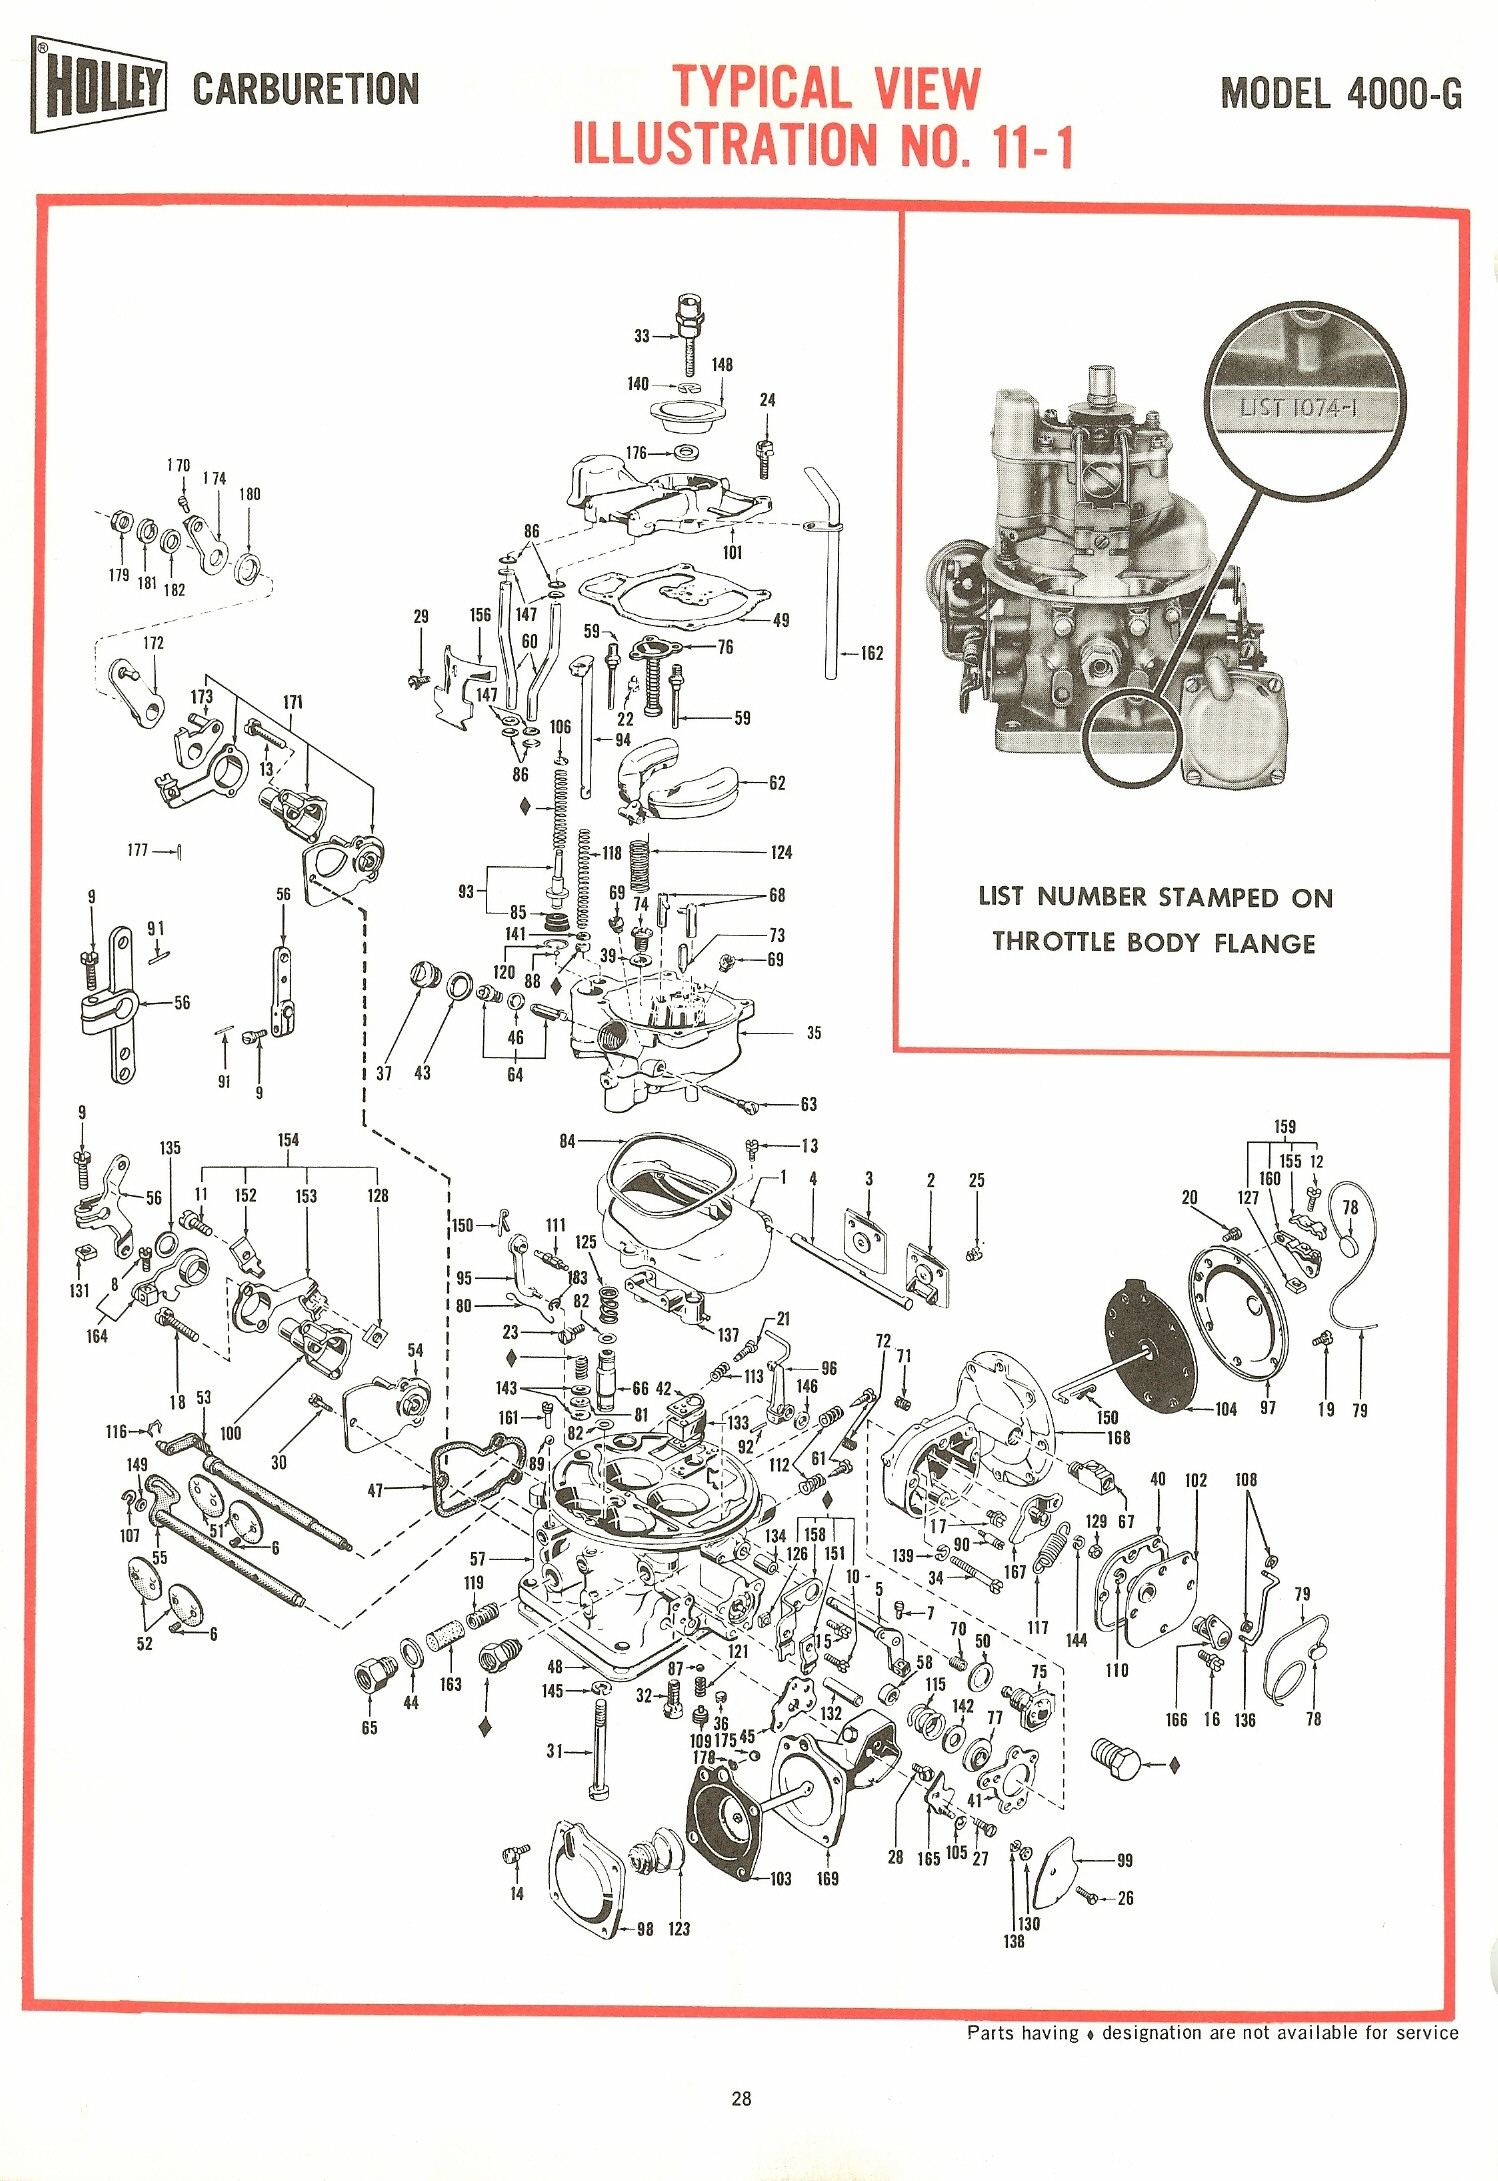 Holley 4000g Exploded Diagrams The Old Car Manual Project